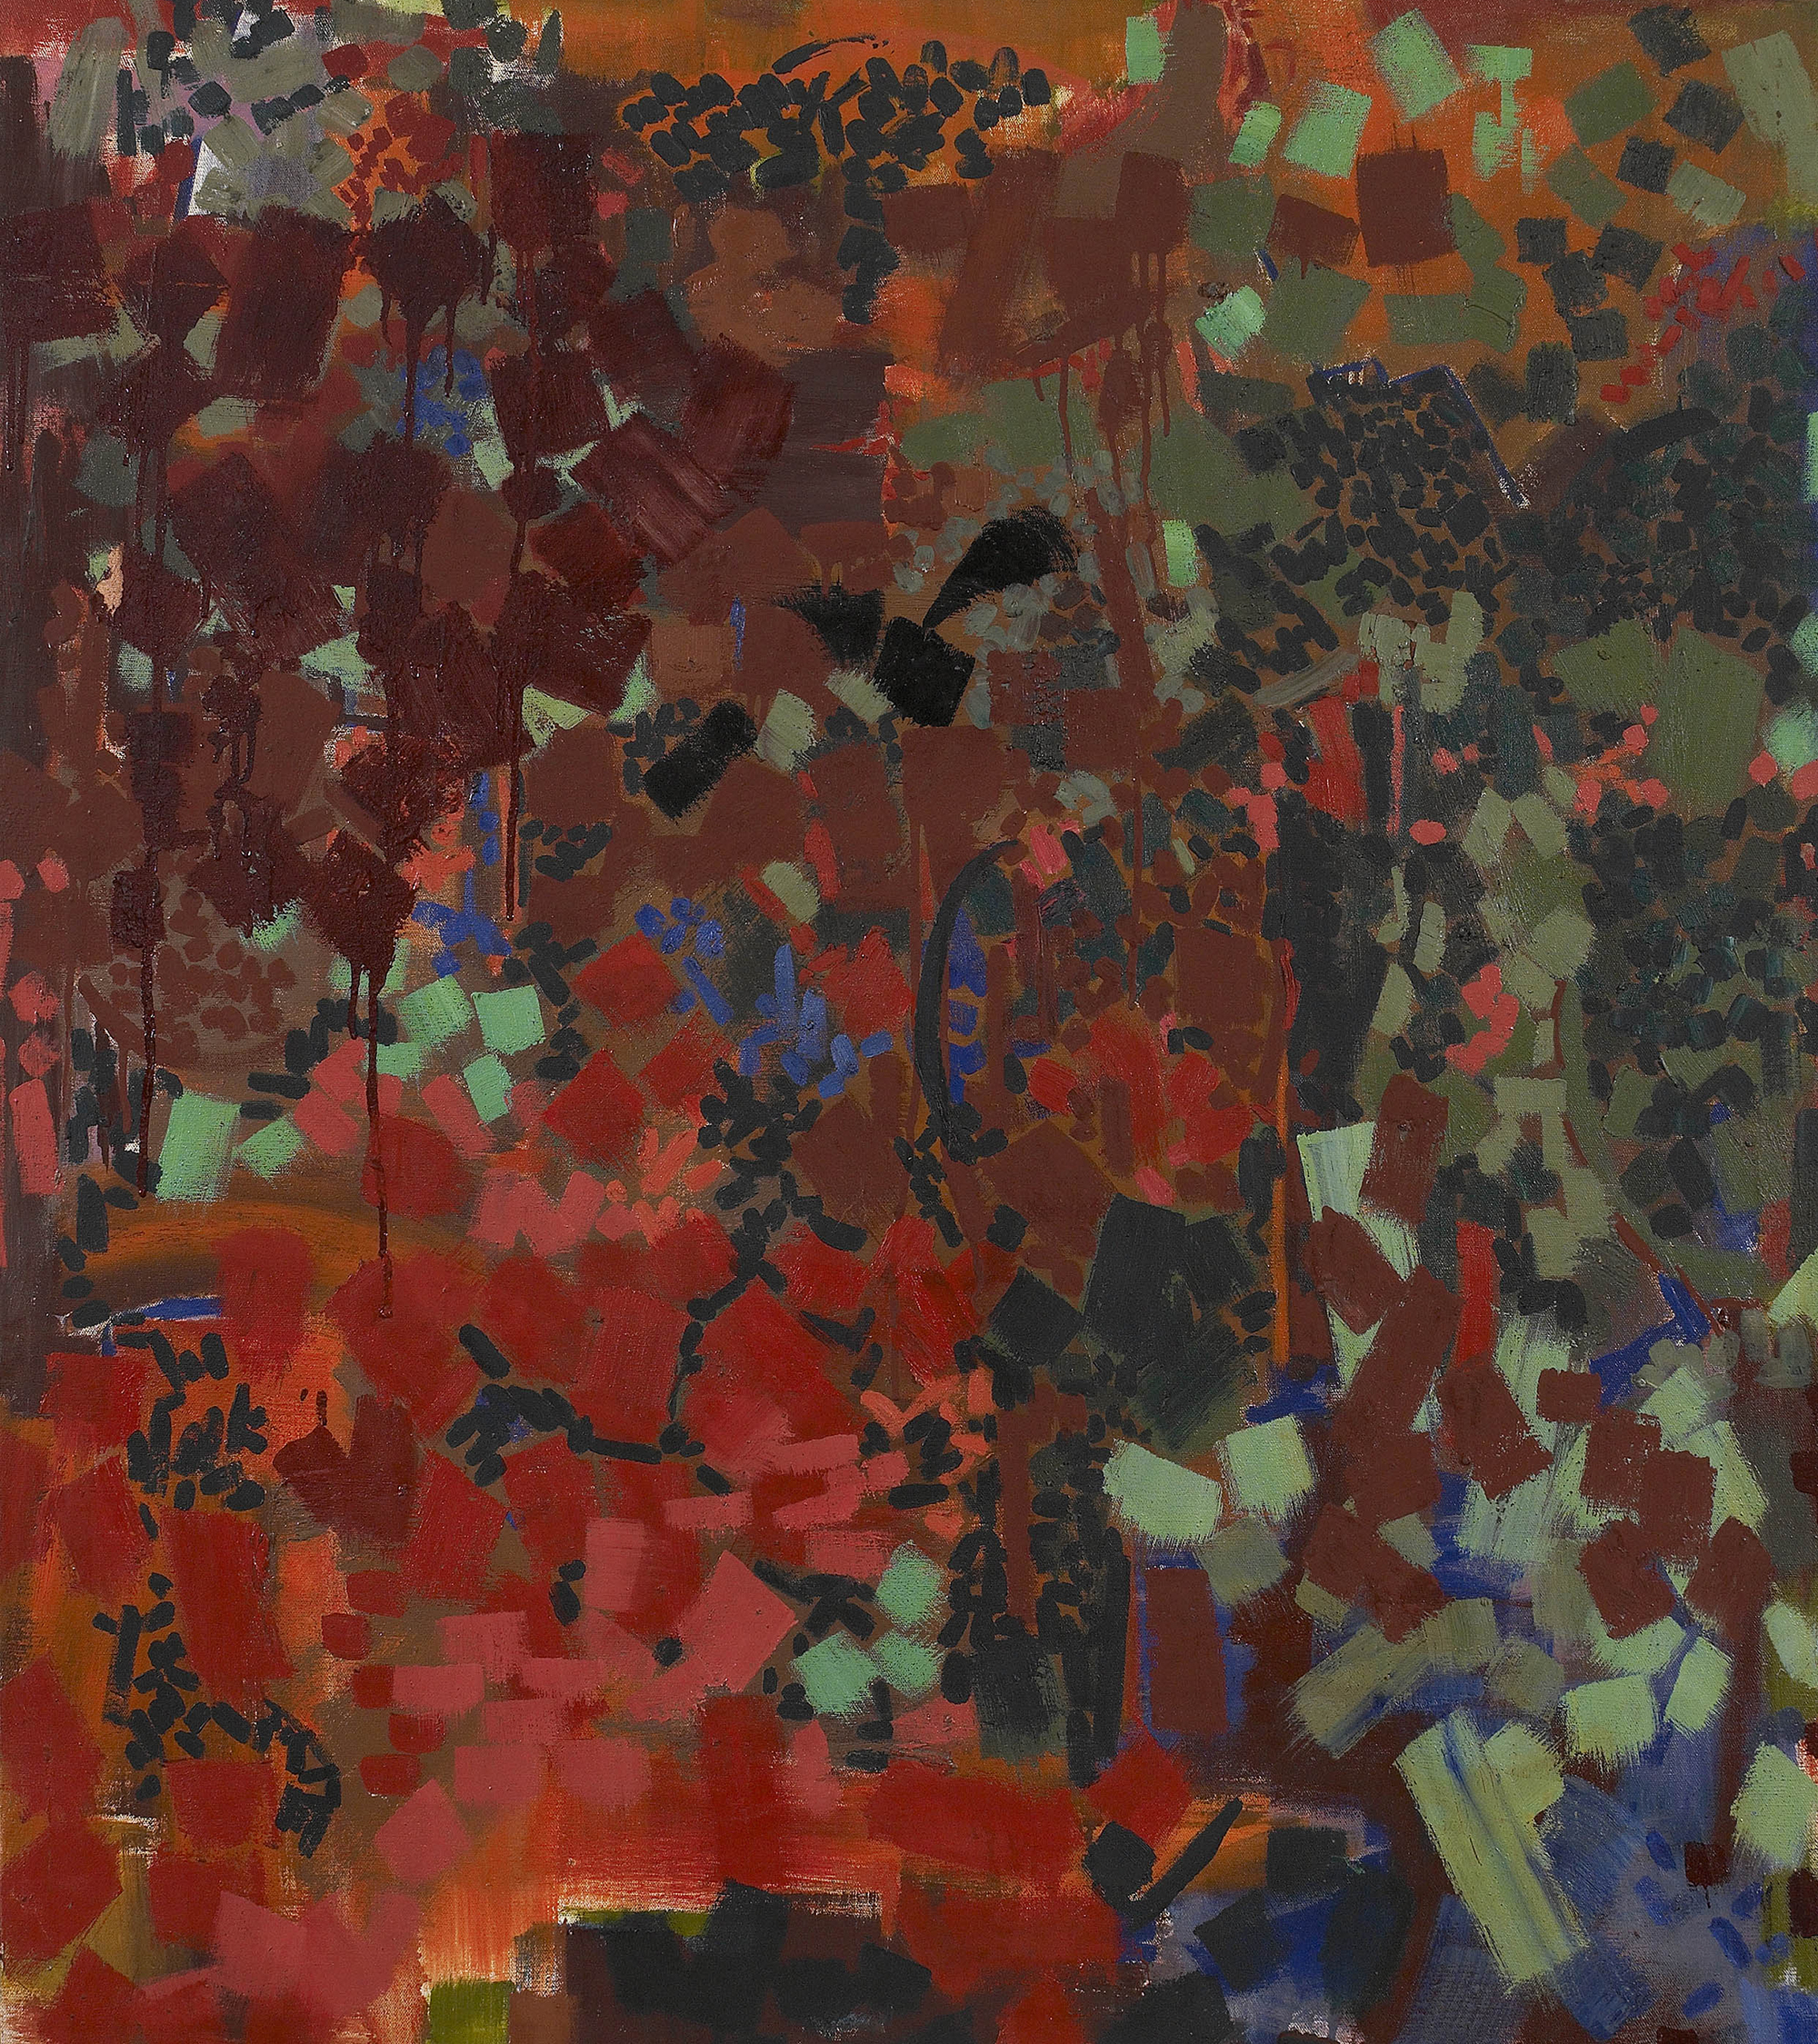 Frika 2,  1960, Oil on canvas, 42 x 36 inches